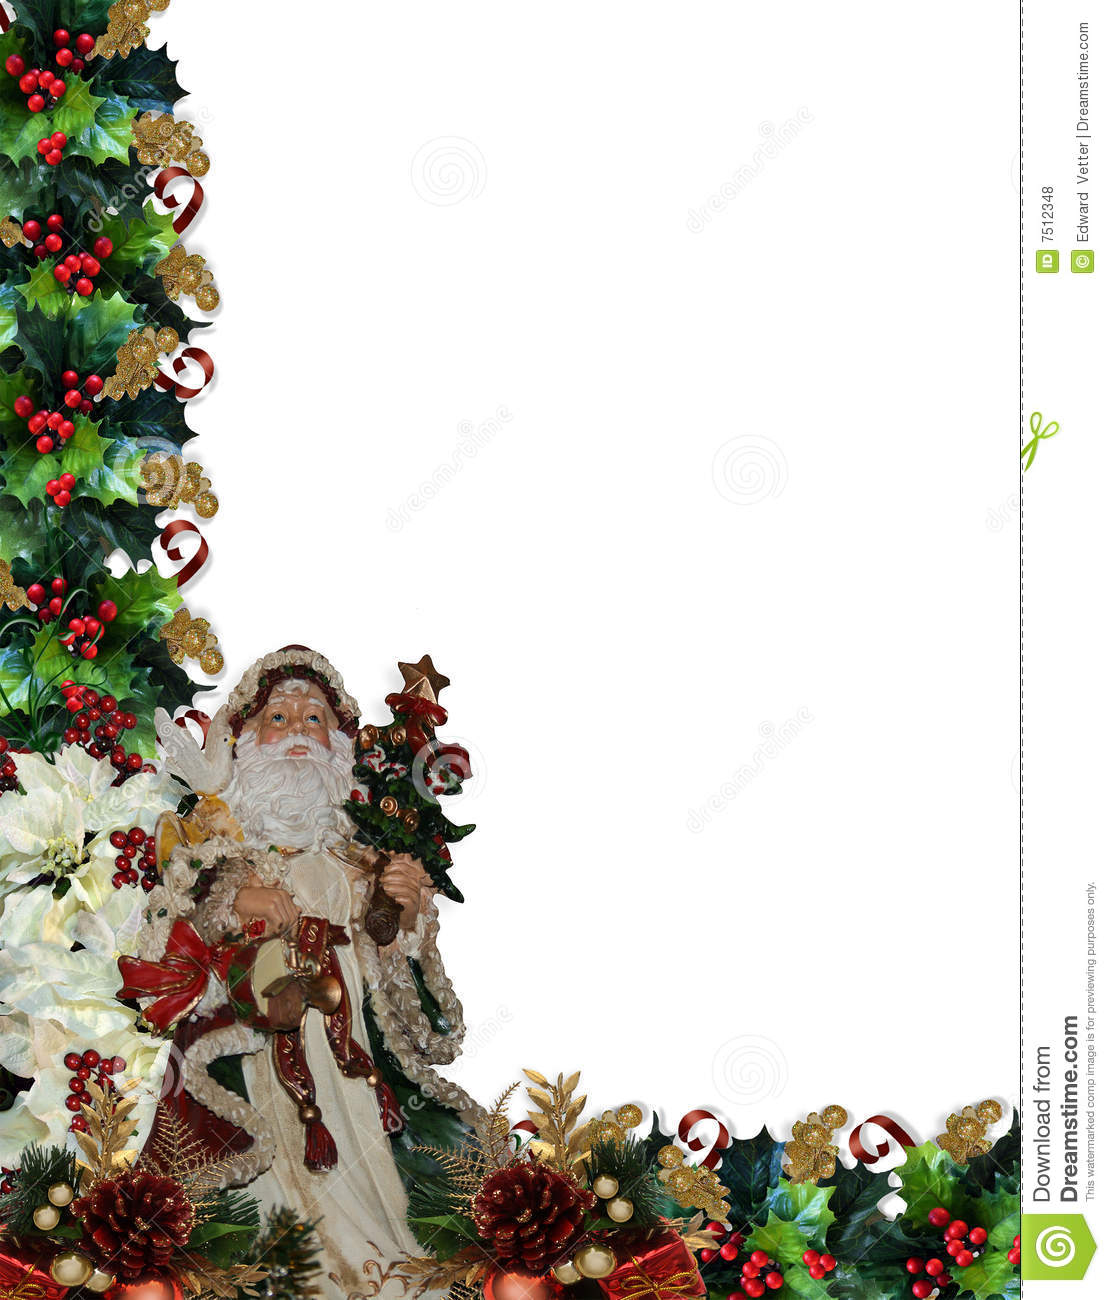 christmas border victorian santa stock illustration